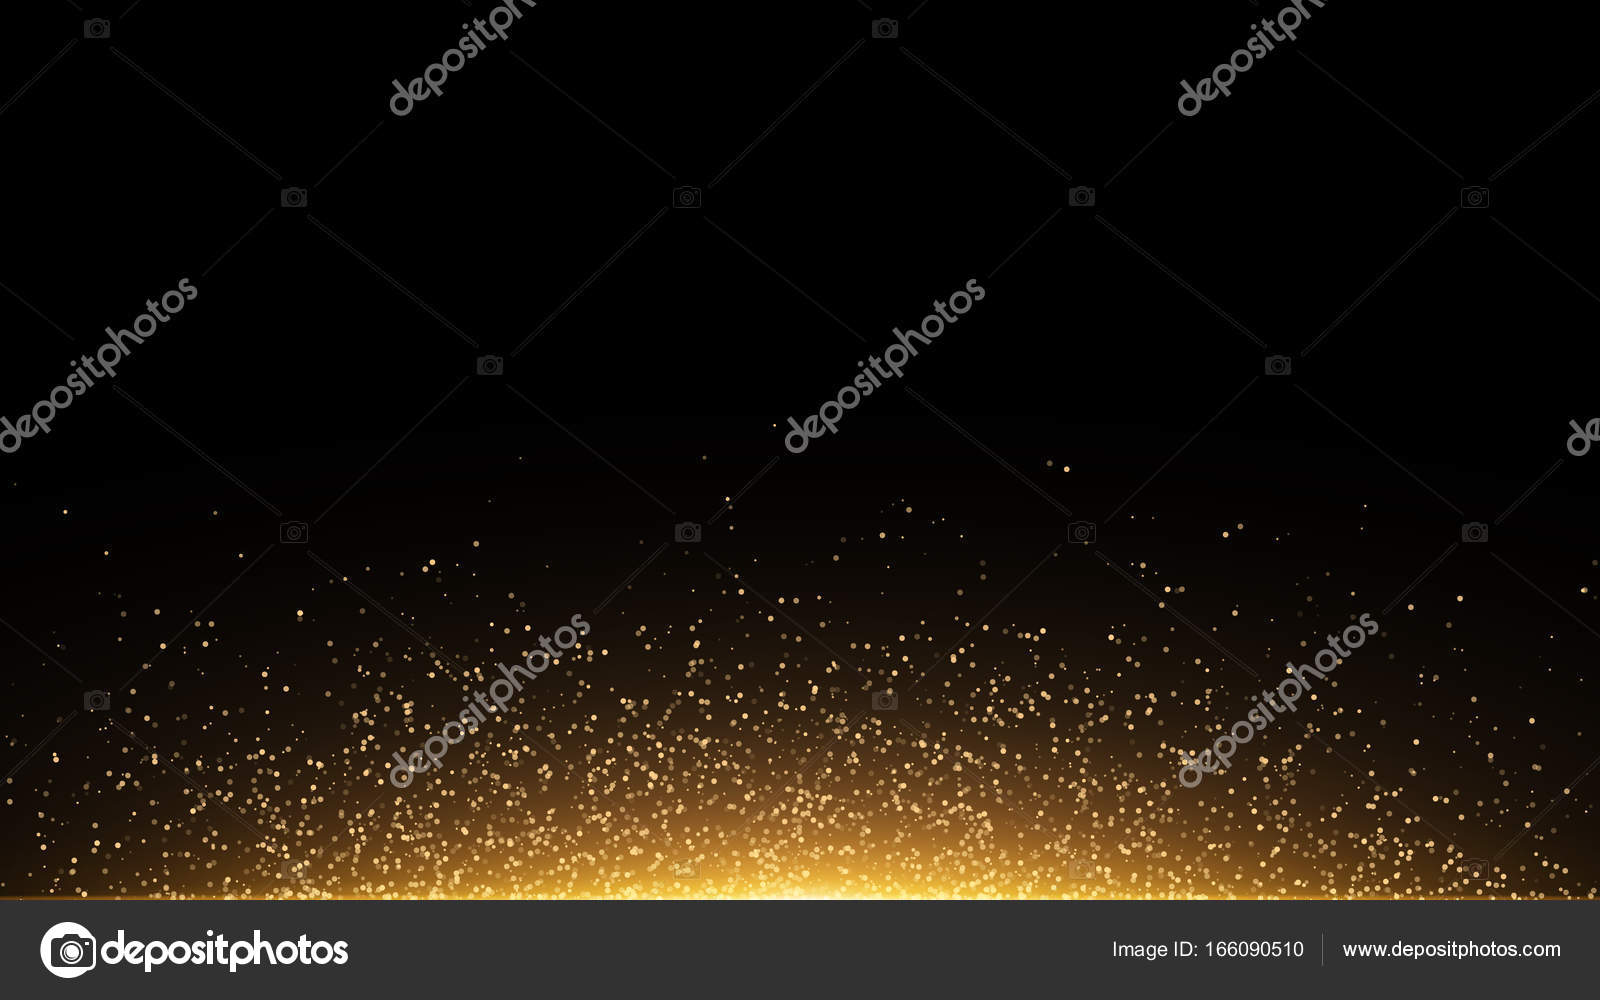 Golden glowing dust on a black background. Backlight from the bottom ...